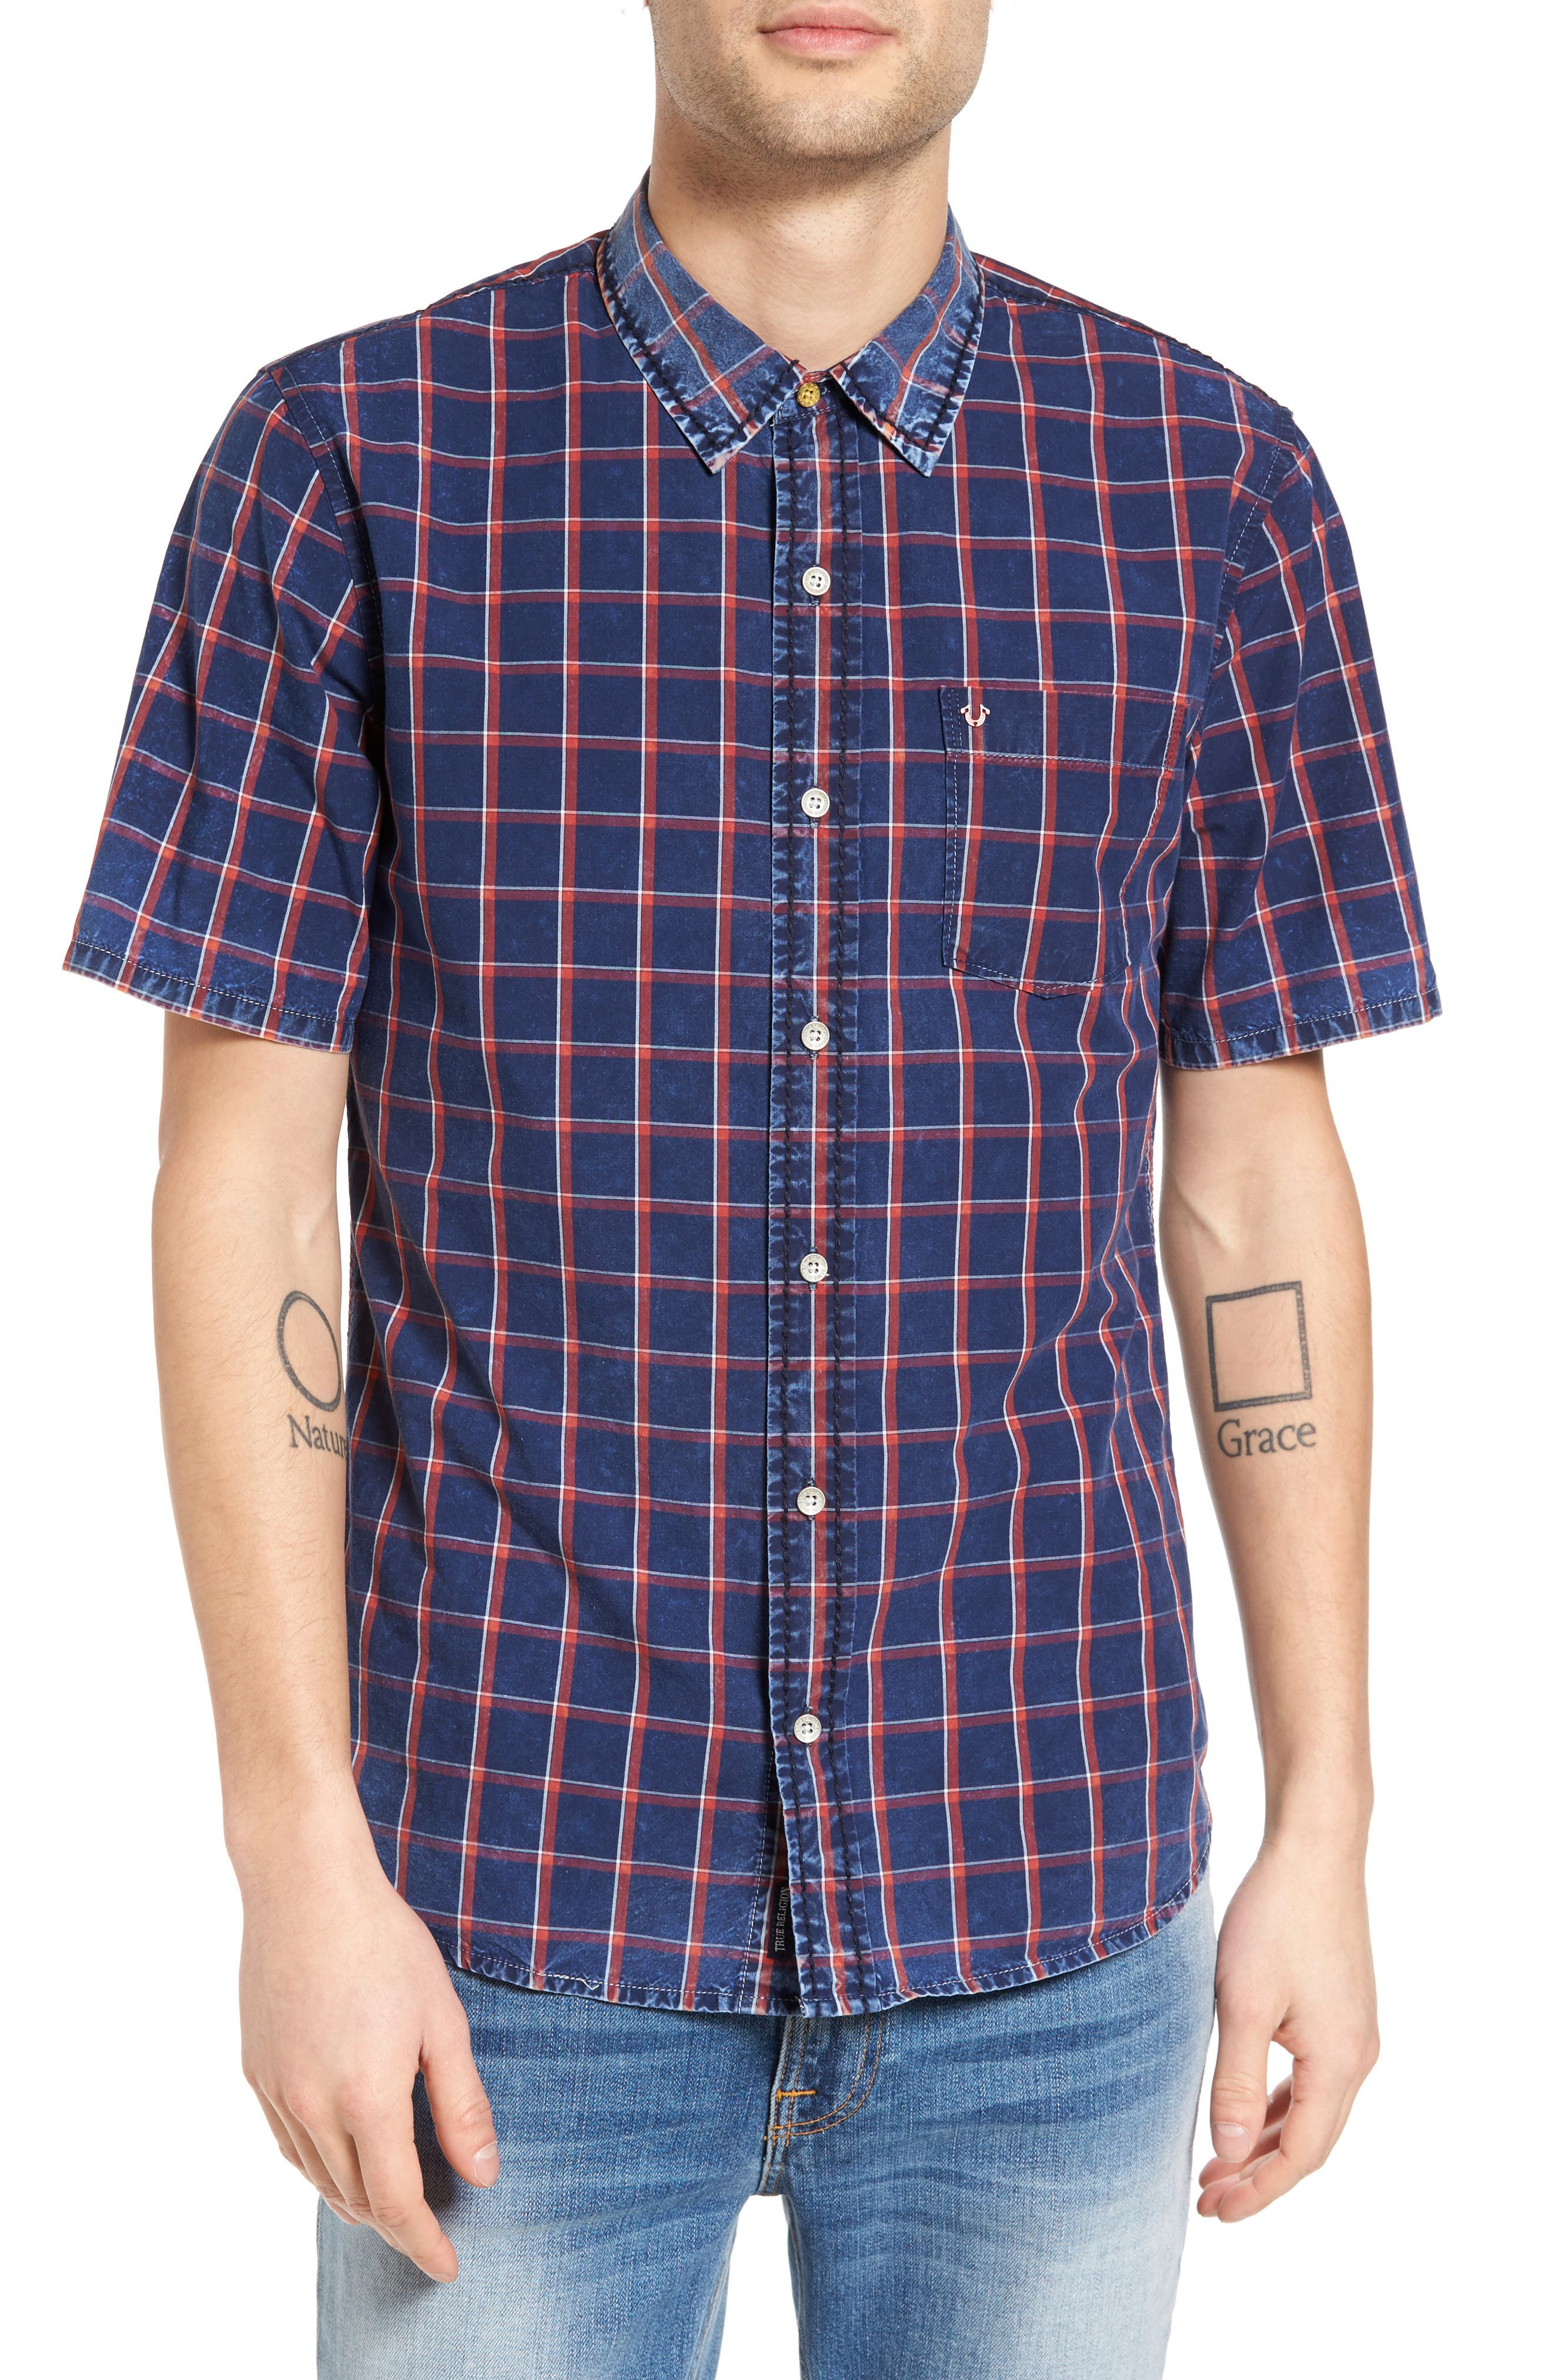 Alternate Image 1 Selected - True Religion Brand Jeans Plaid Shirt